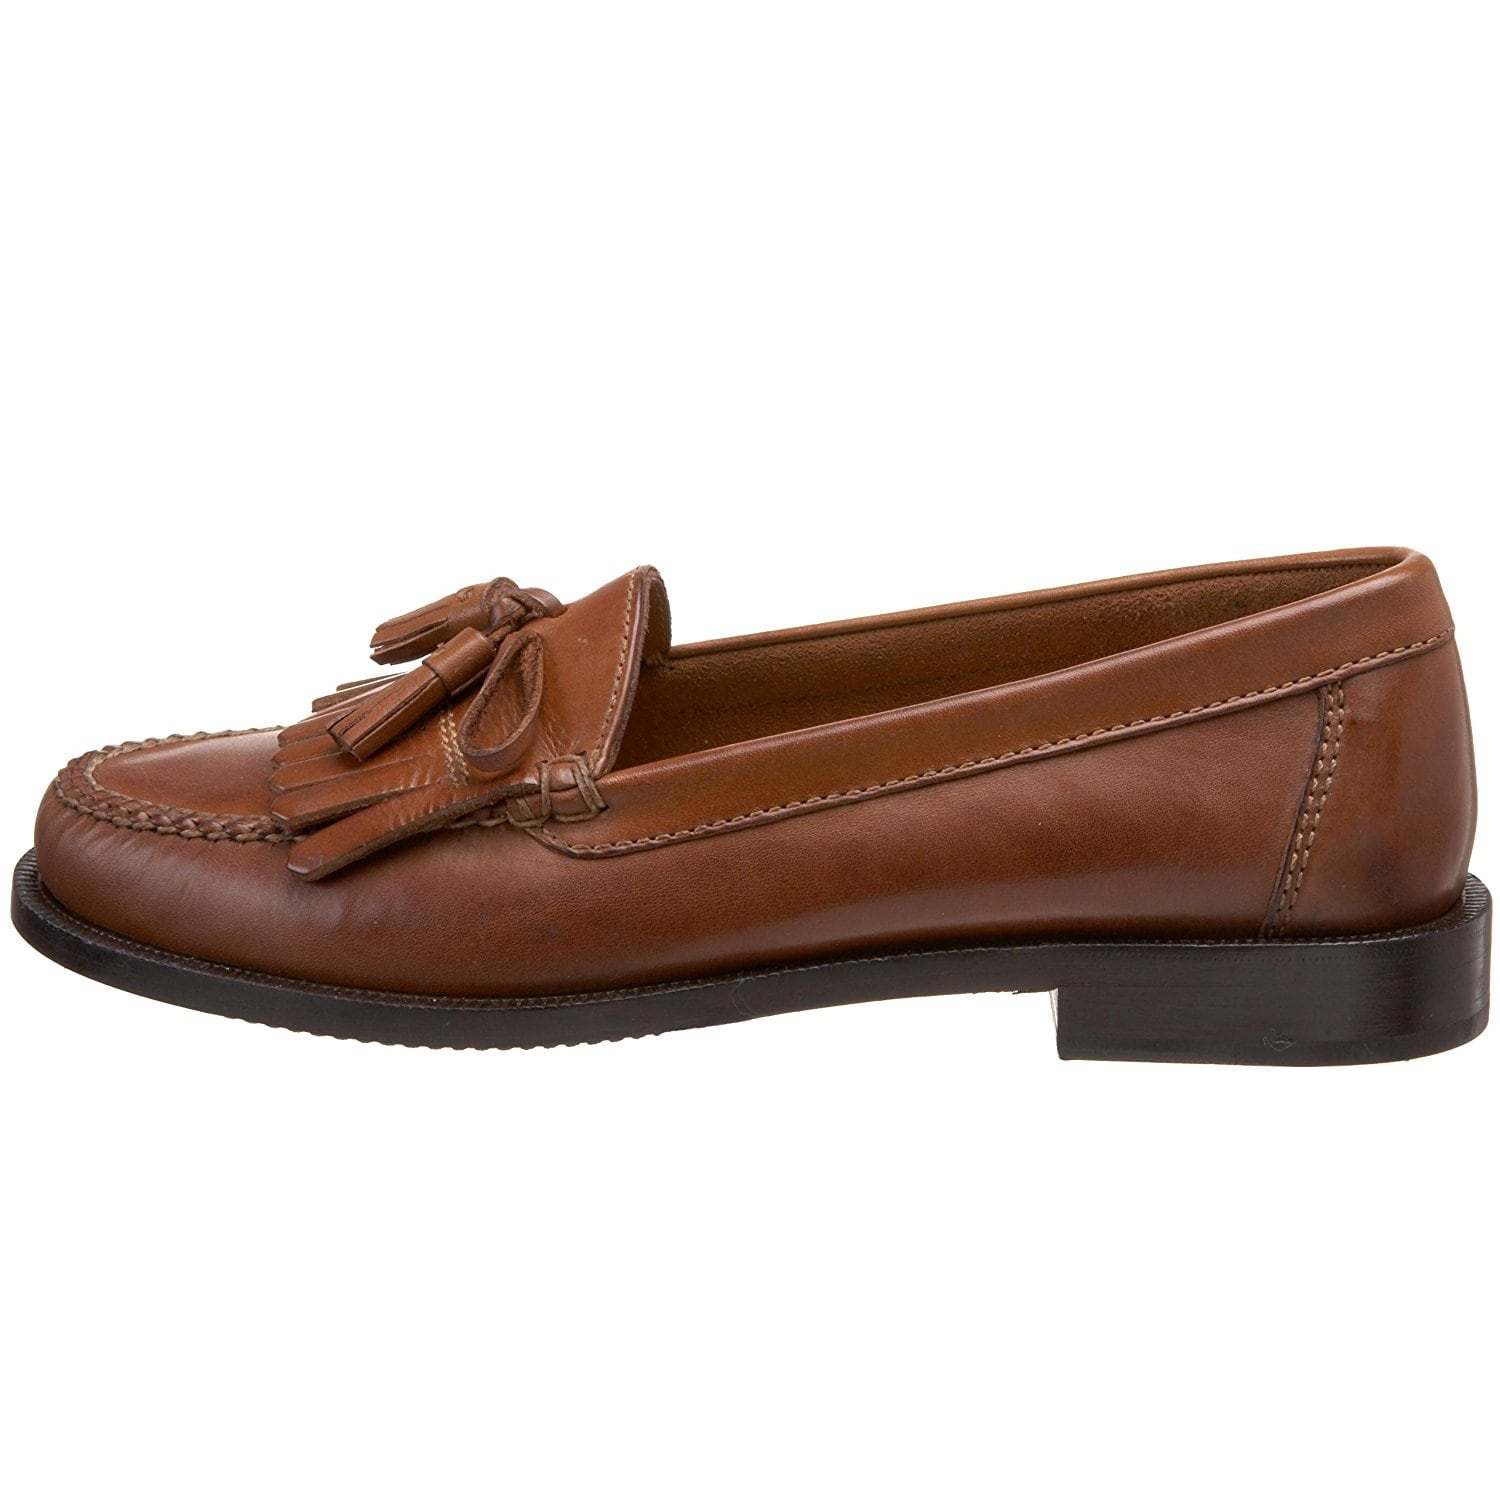 aae5755db85 Shop Cole Haan Men s Dwight Loafer - Free Shipping Today - Overstock -  15444307